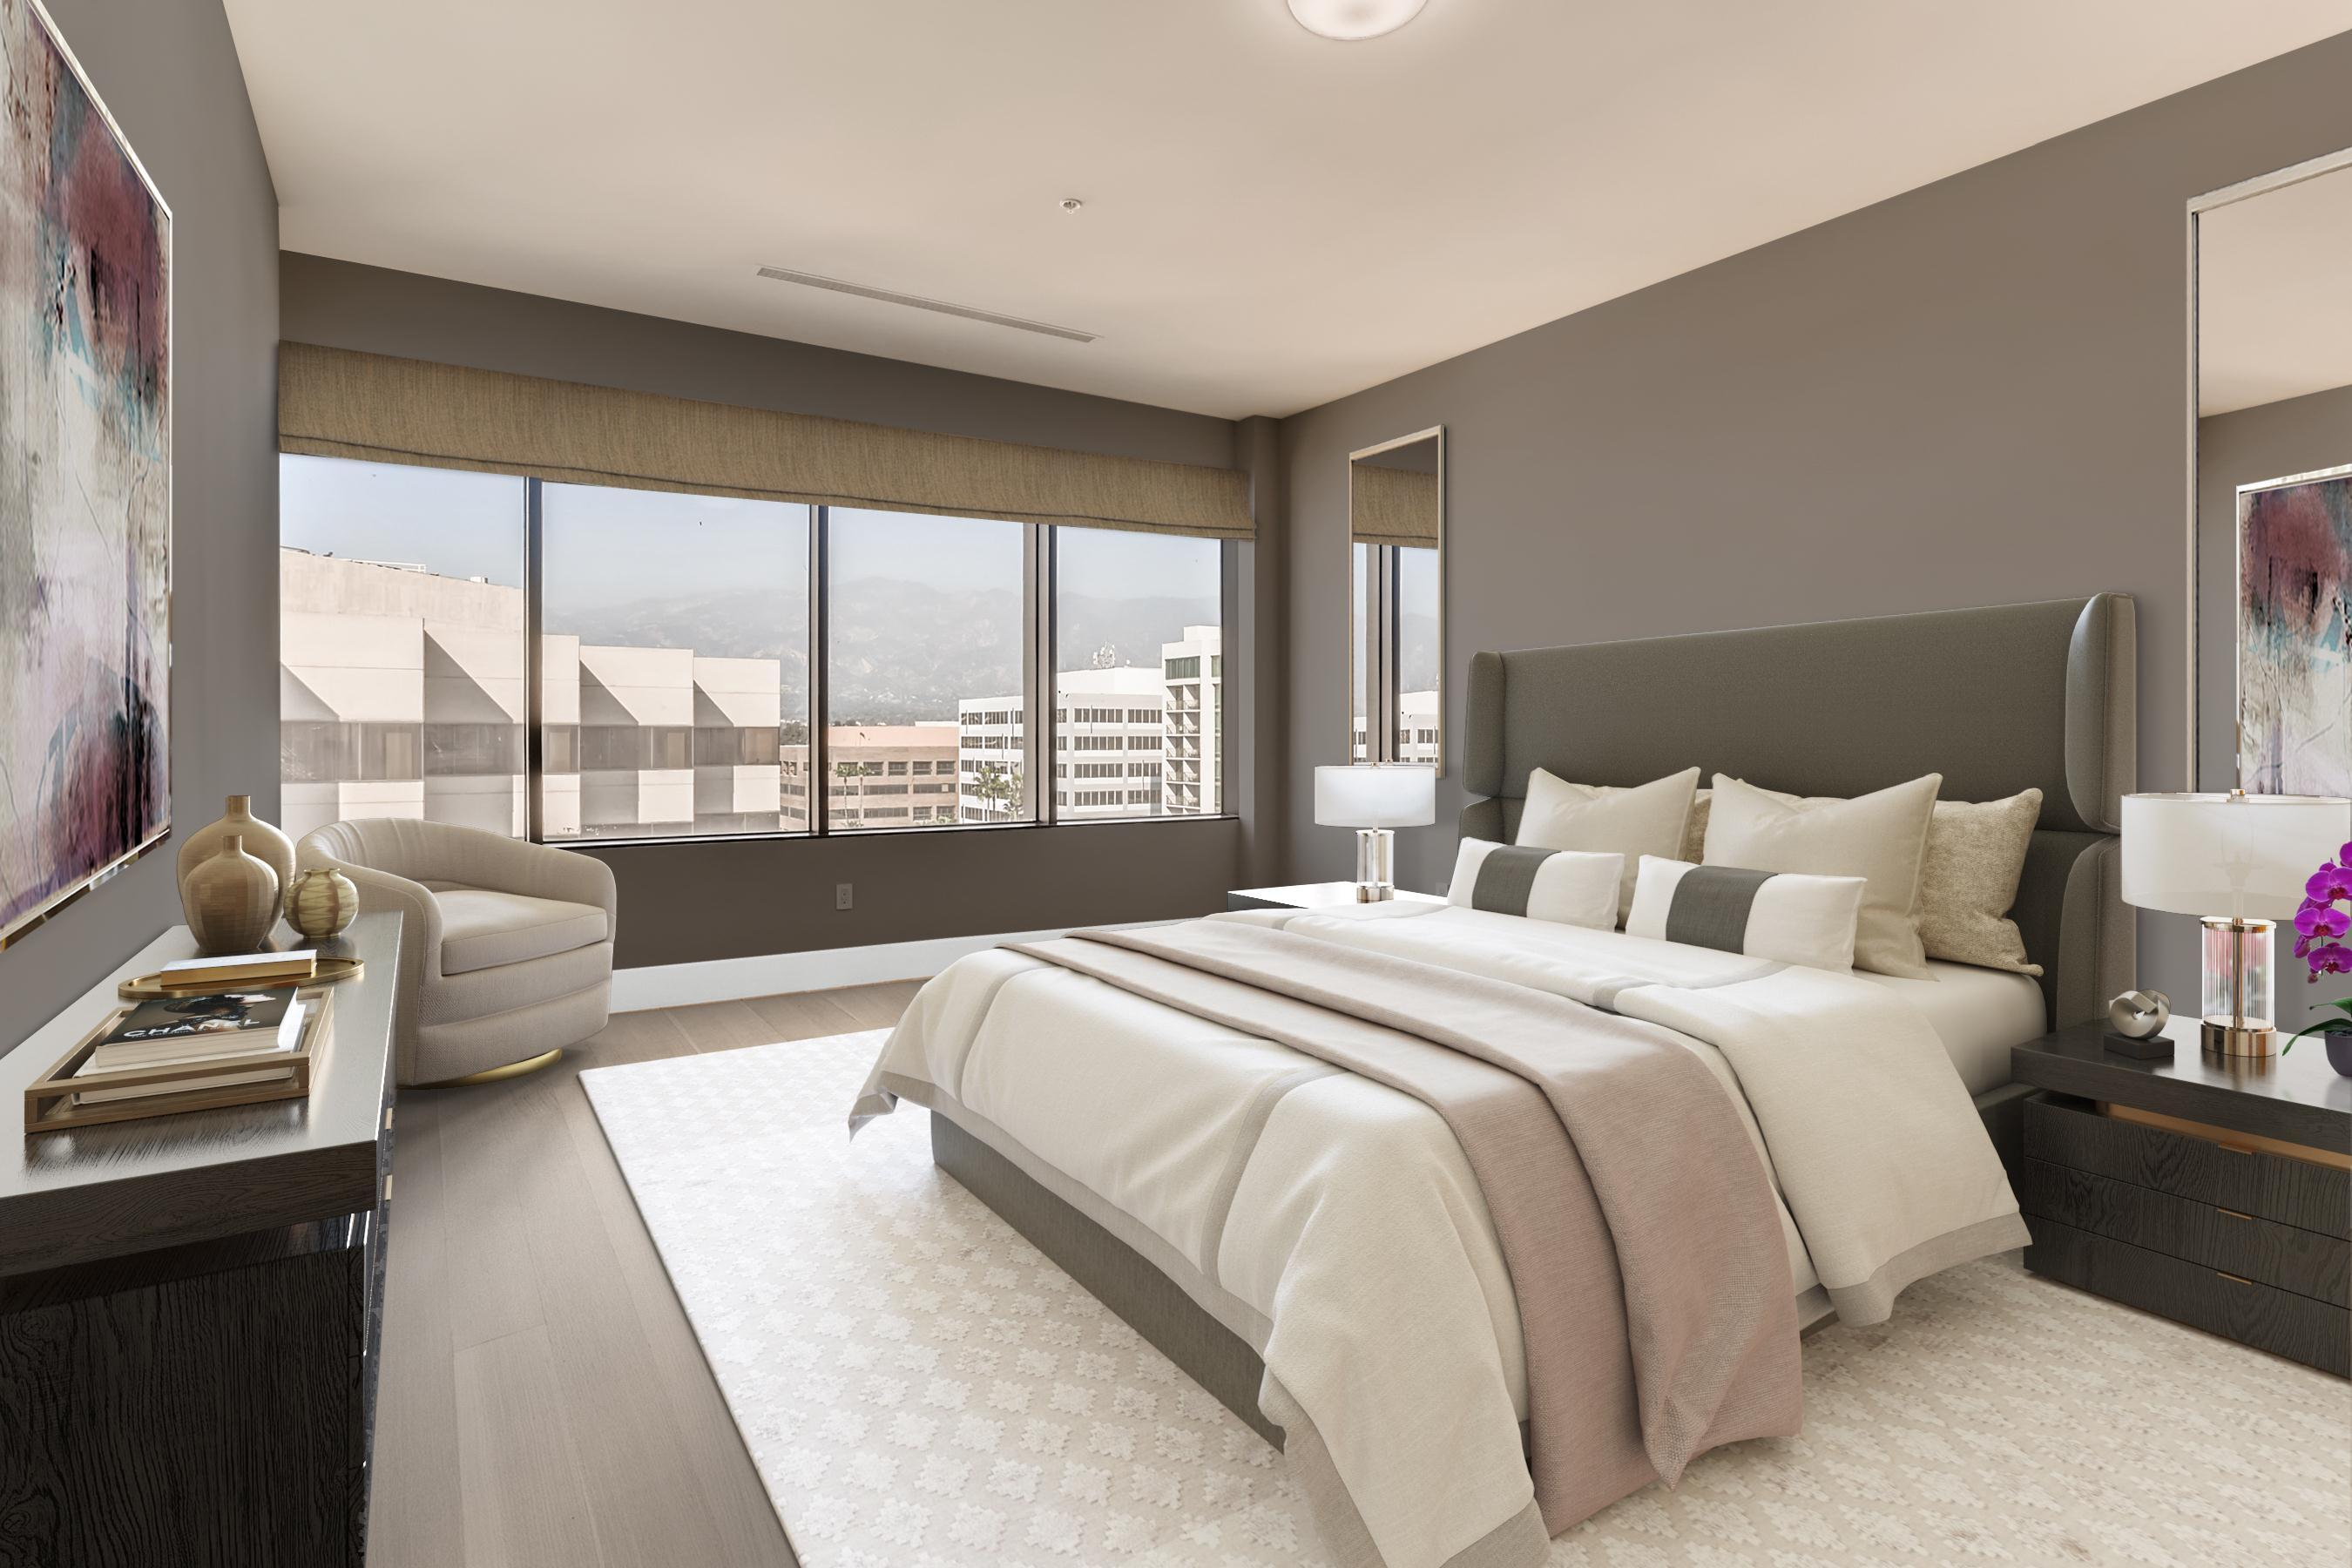 Bedroom featured in the Penthouse 3 By Adept Urban  in Los Angeles, CA